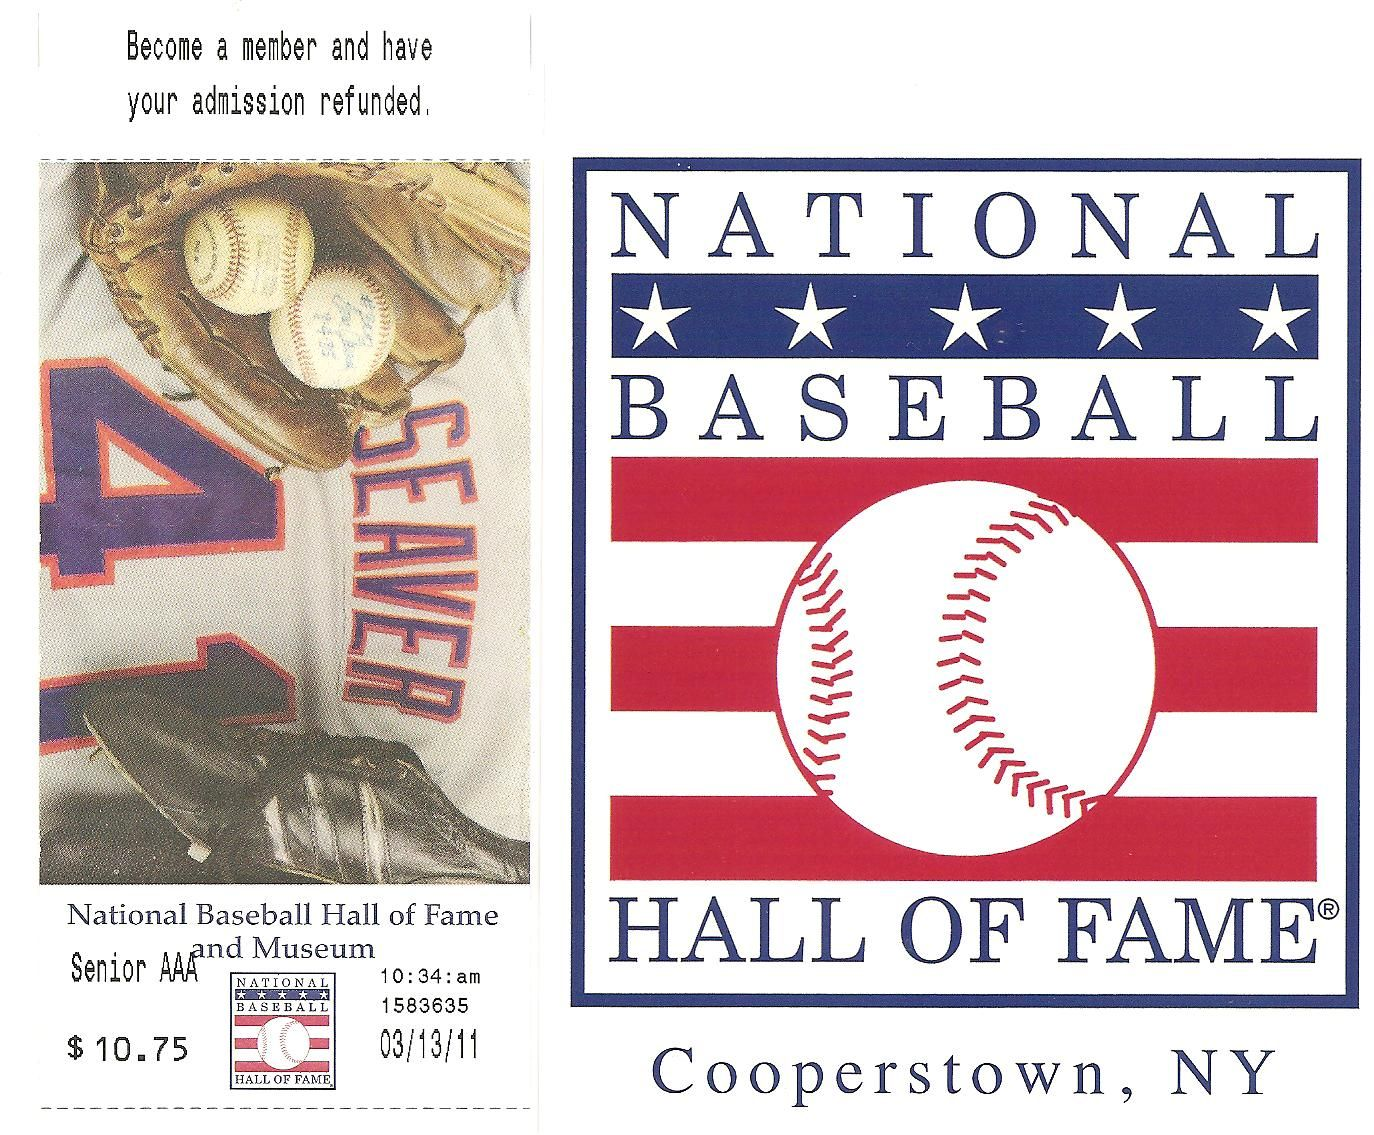 cooperstown, ny every kid who likes baseball should go | places to